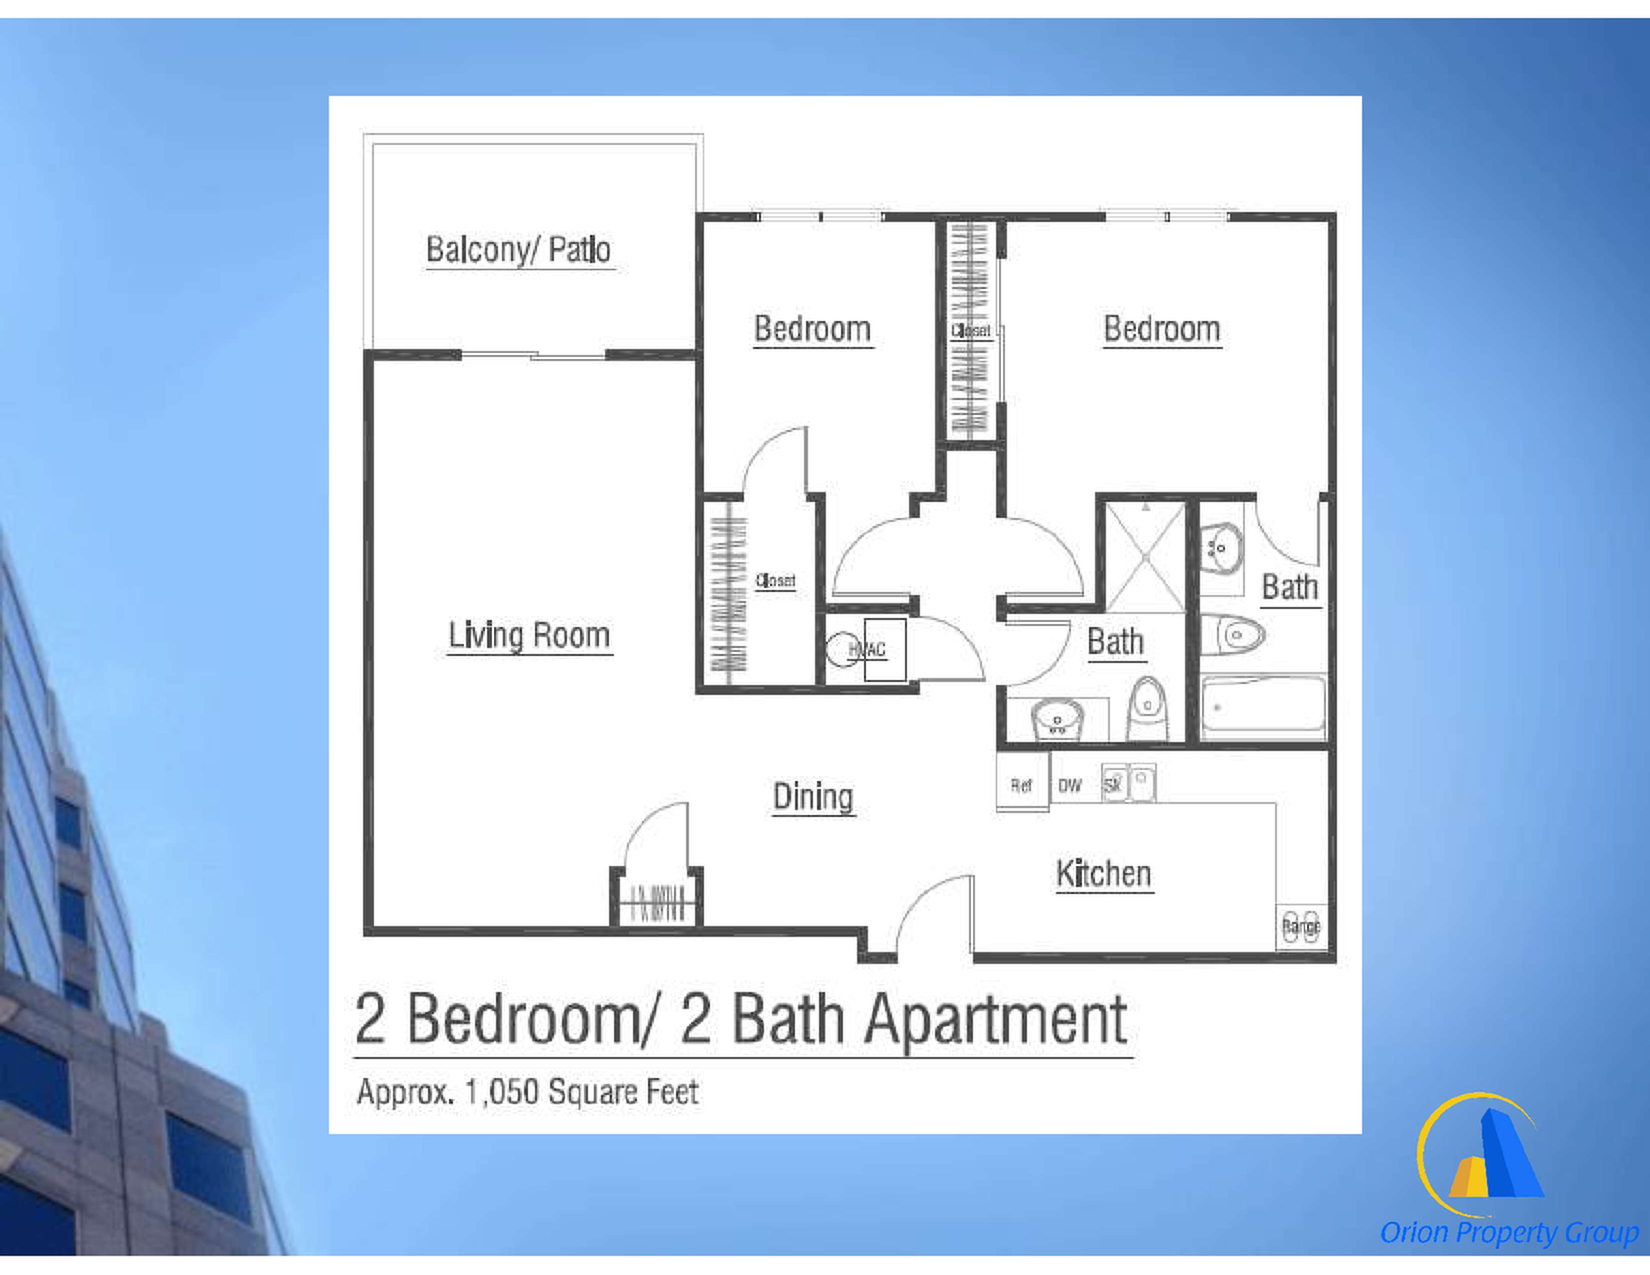 Brochure includes info on 2 bed/2 bath